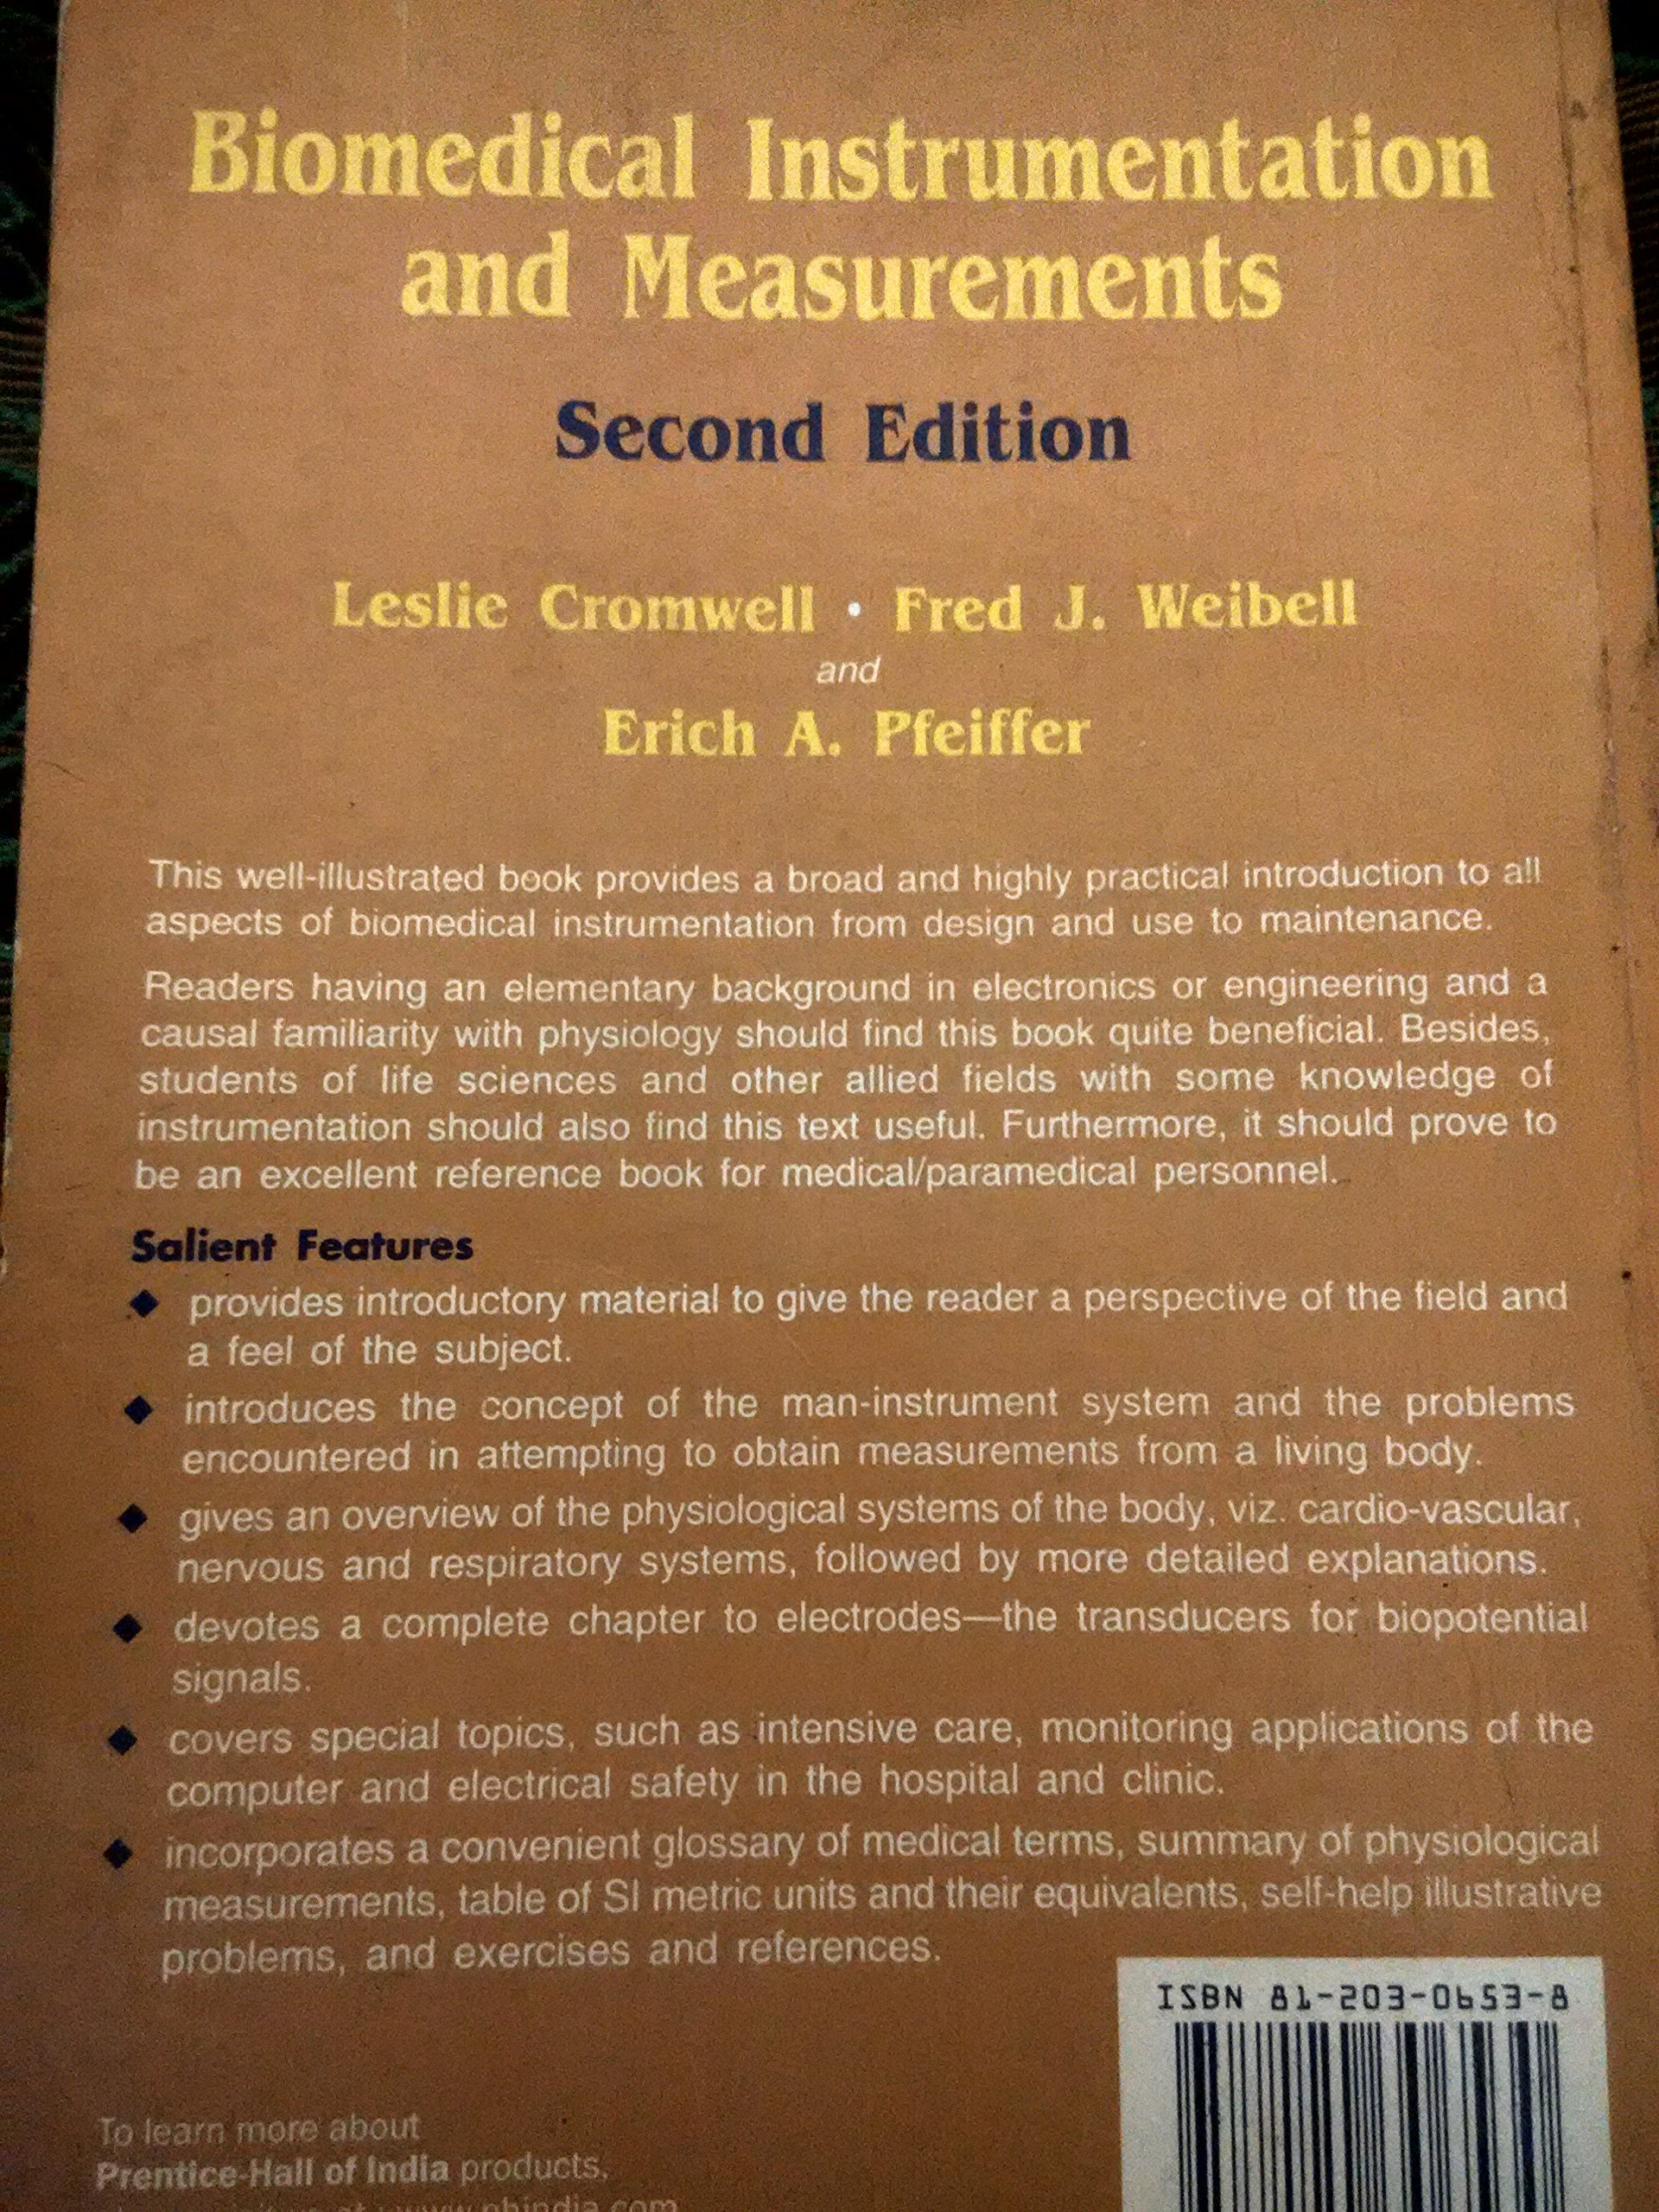 Biomedical Instrumentation By Leslie Cromwell Pdf